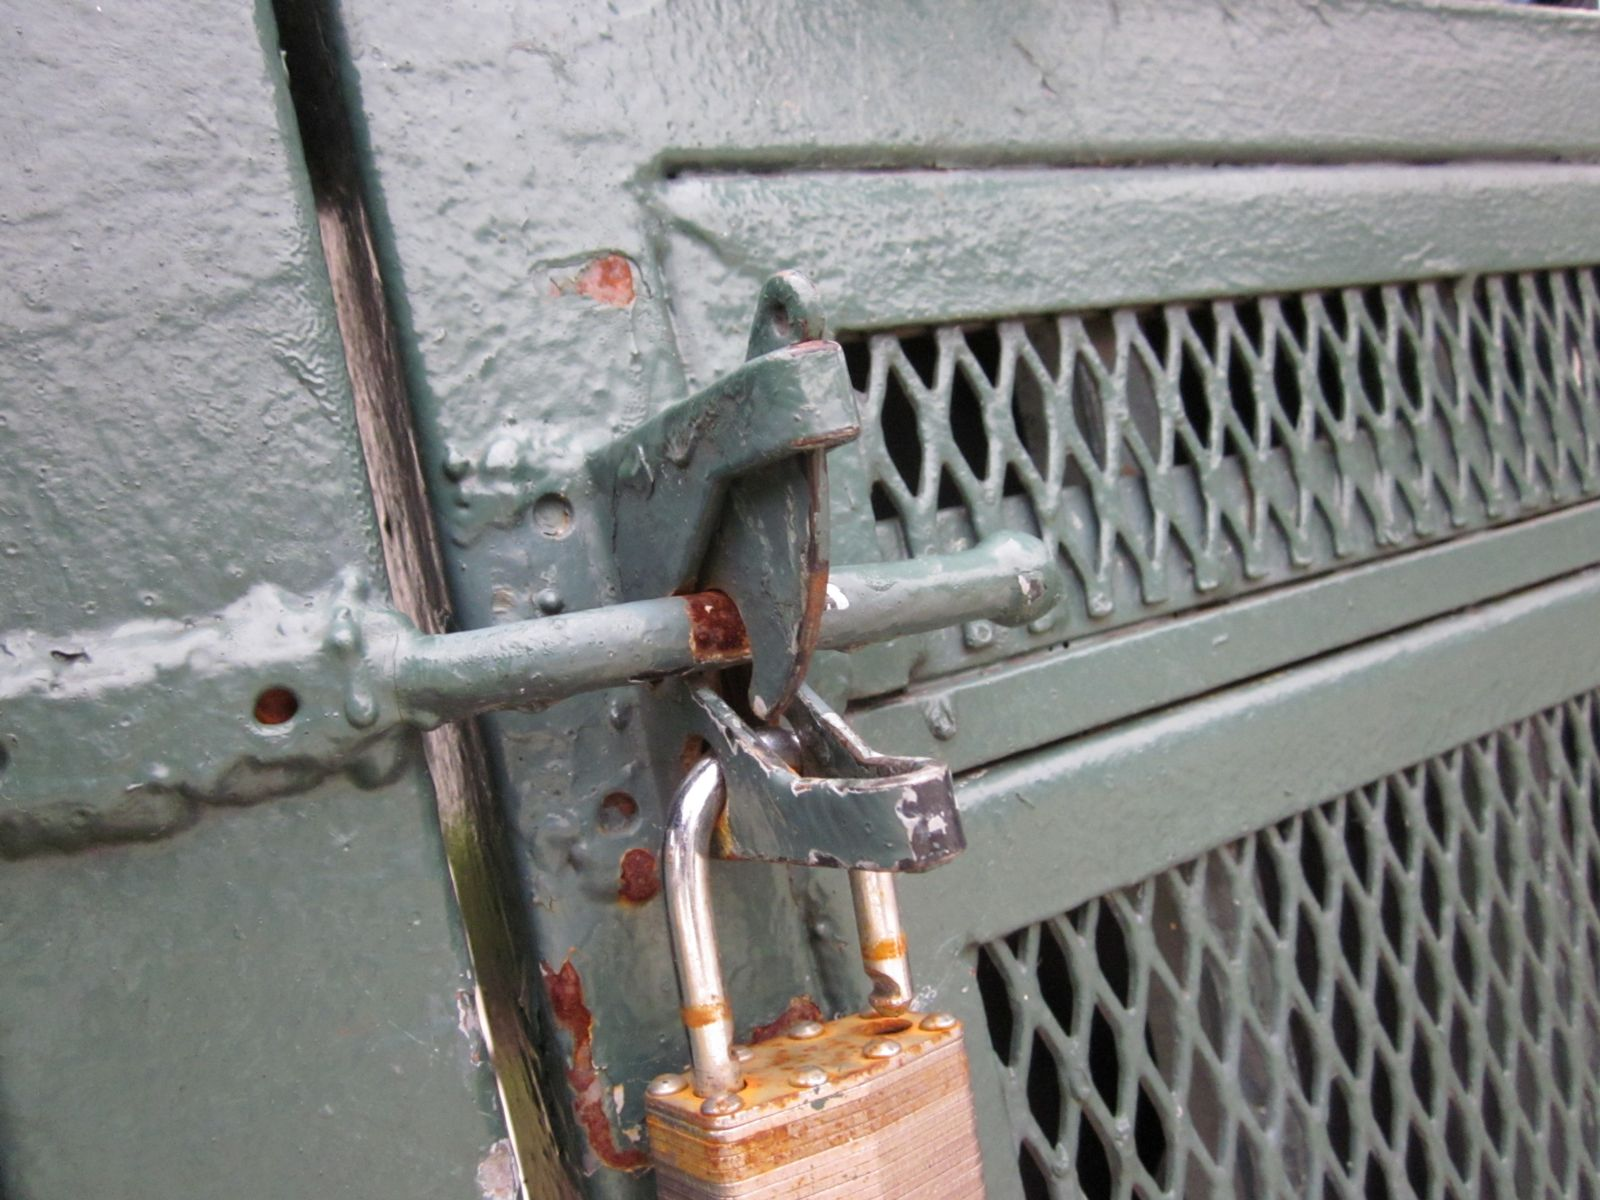 Broken latch on pool gate at slumlord's property